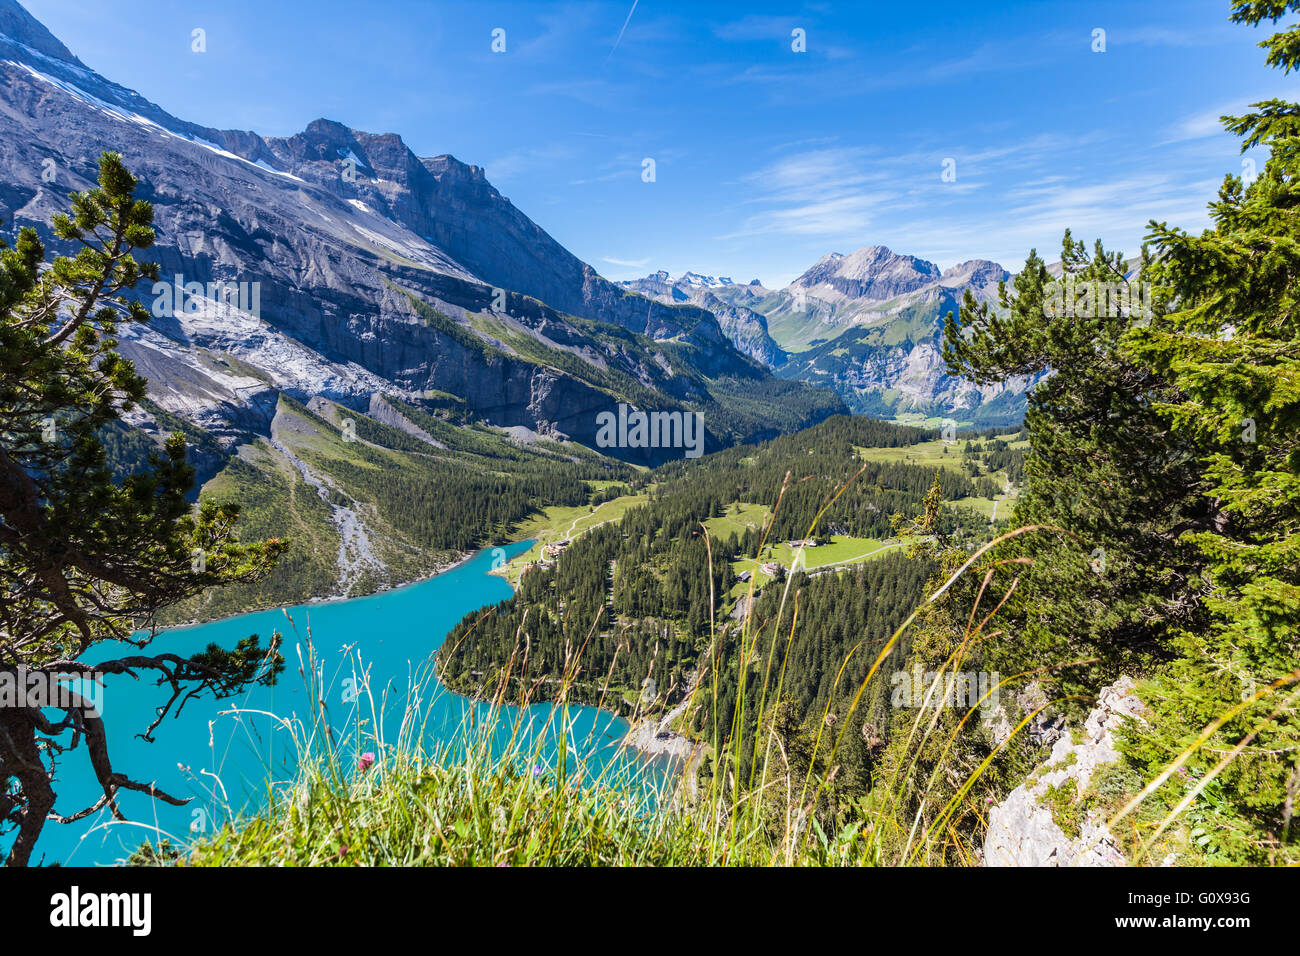 Scenic iew of Oeschinensee (Oeschinen lake) and the valley on bernese oberland, Switzerland - Stock Image